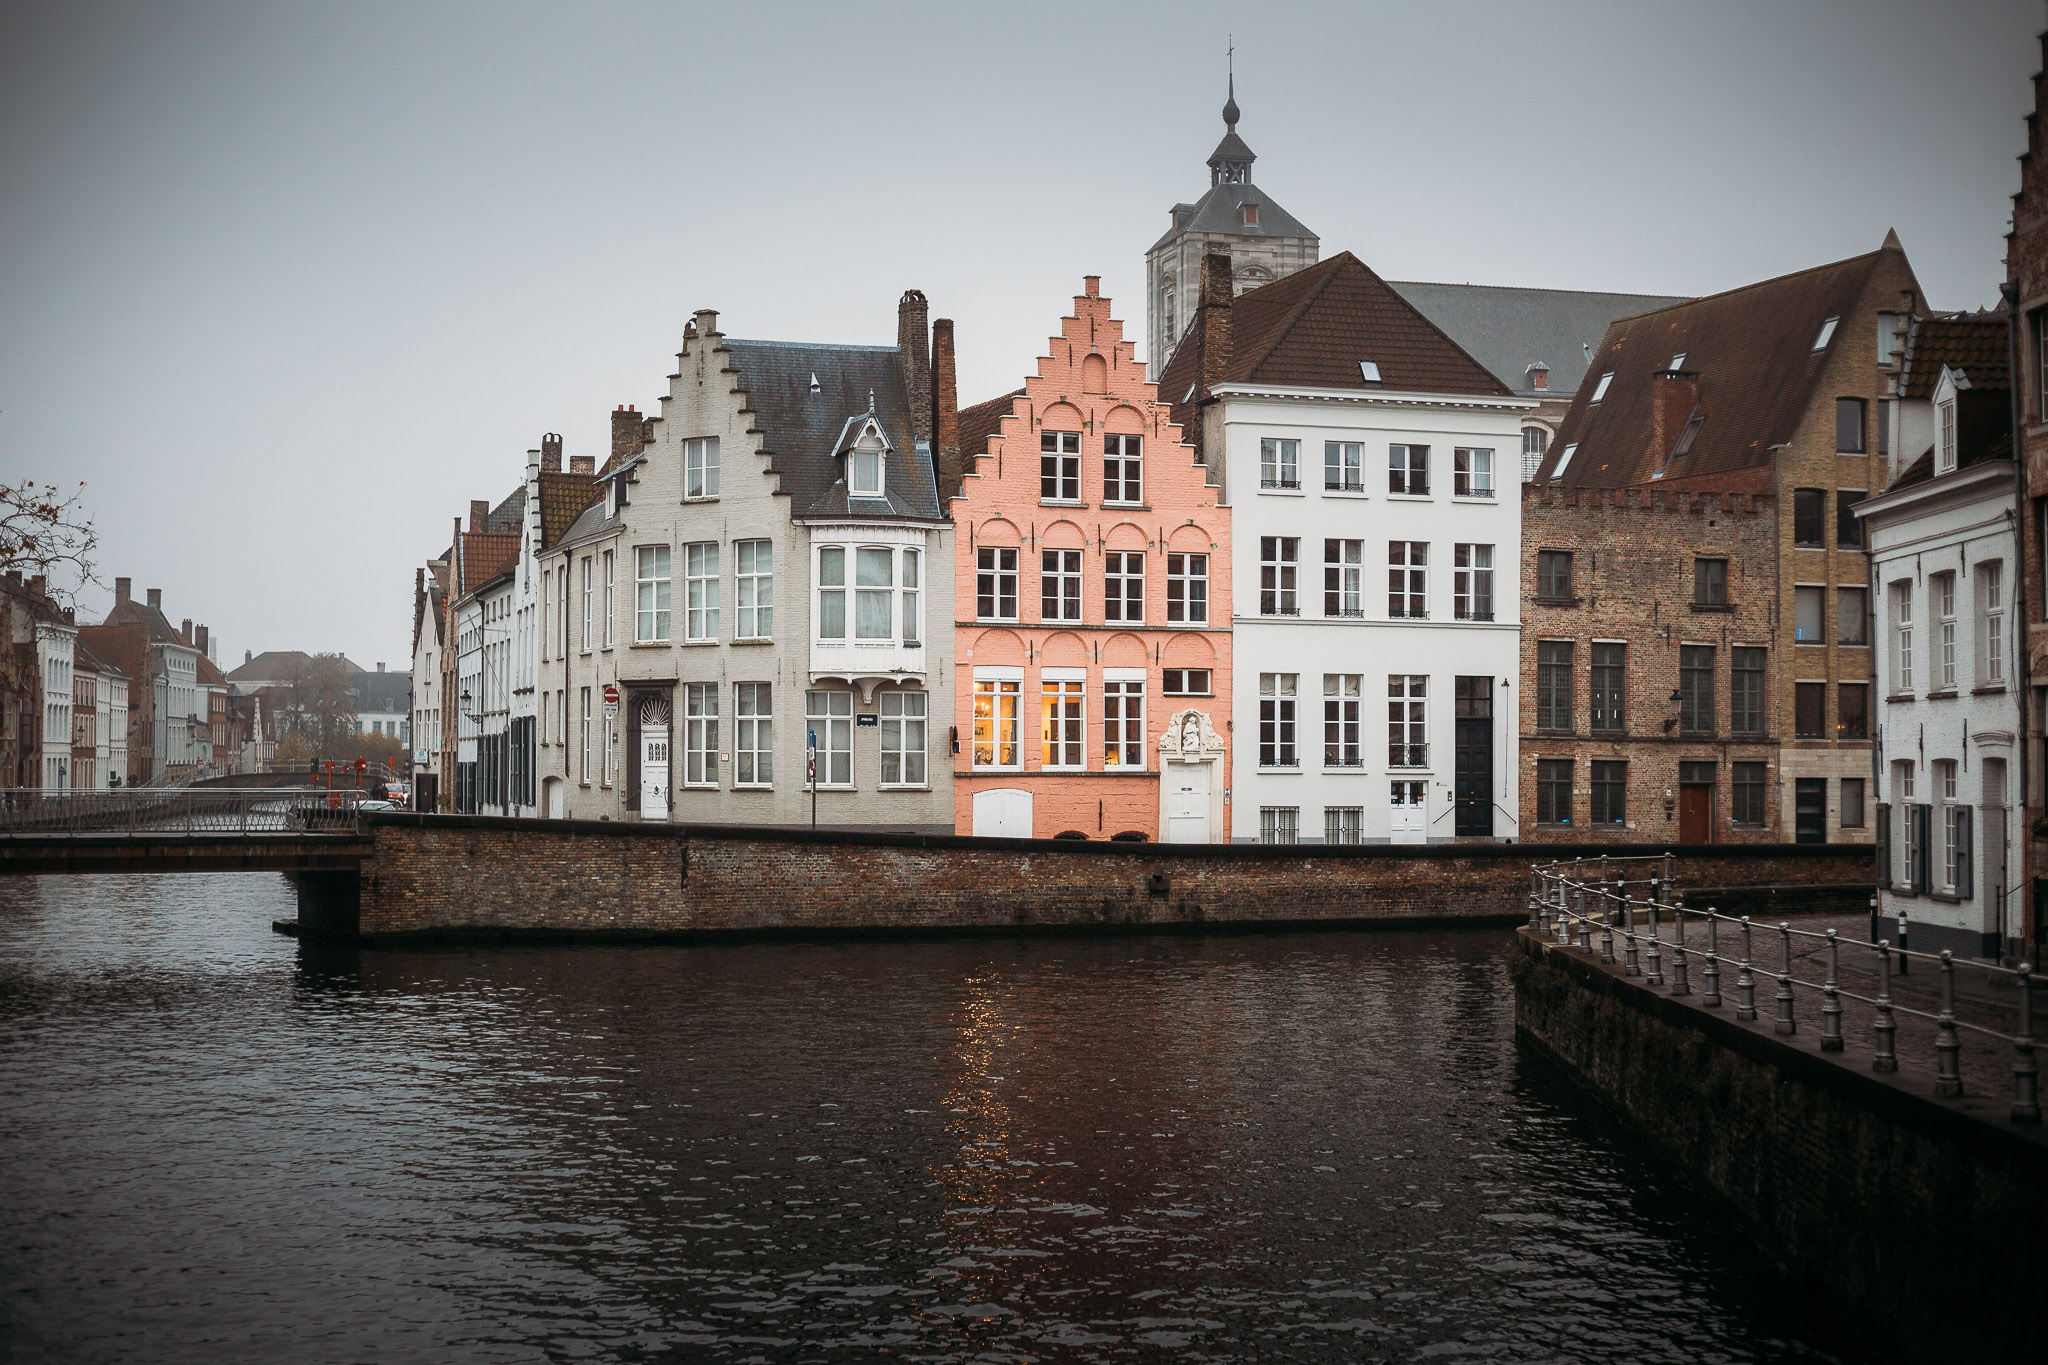 View on the canals in Bruges, Belgium